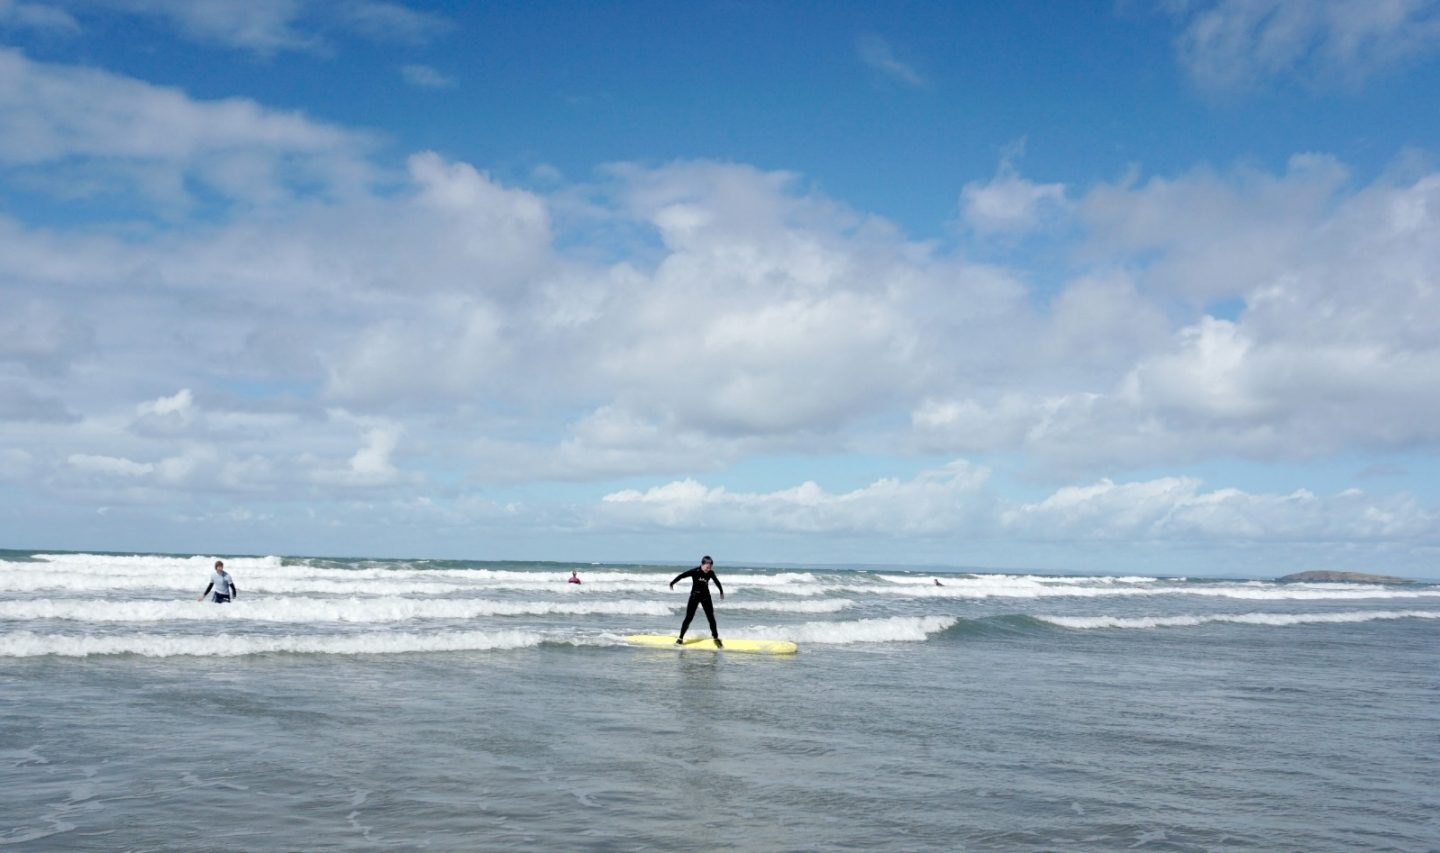 Surfing in Wales www.extraordinarychaos.com